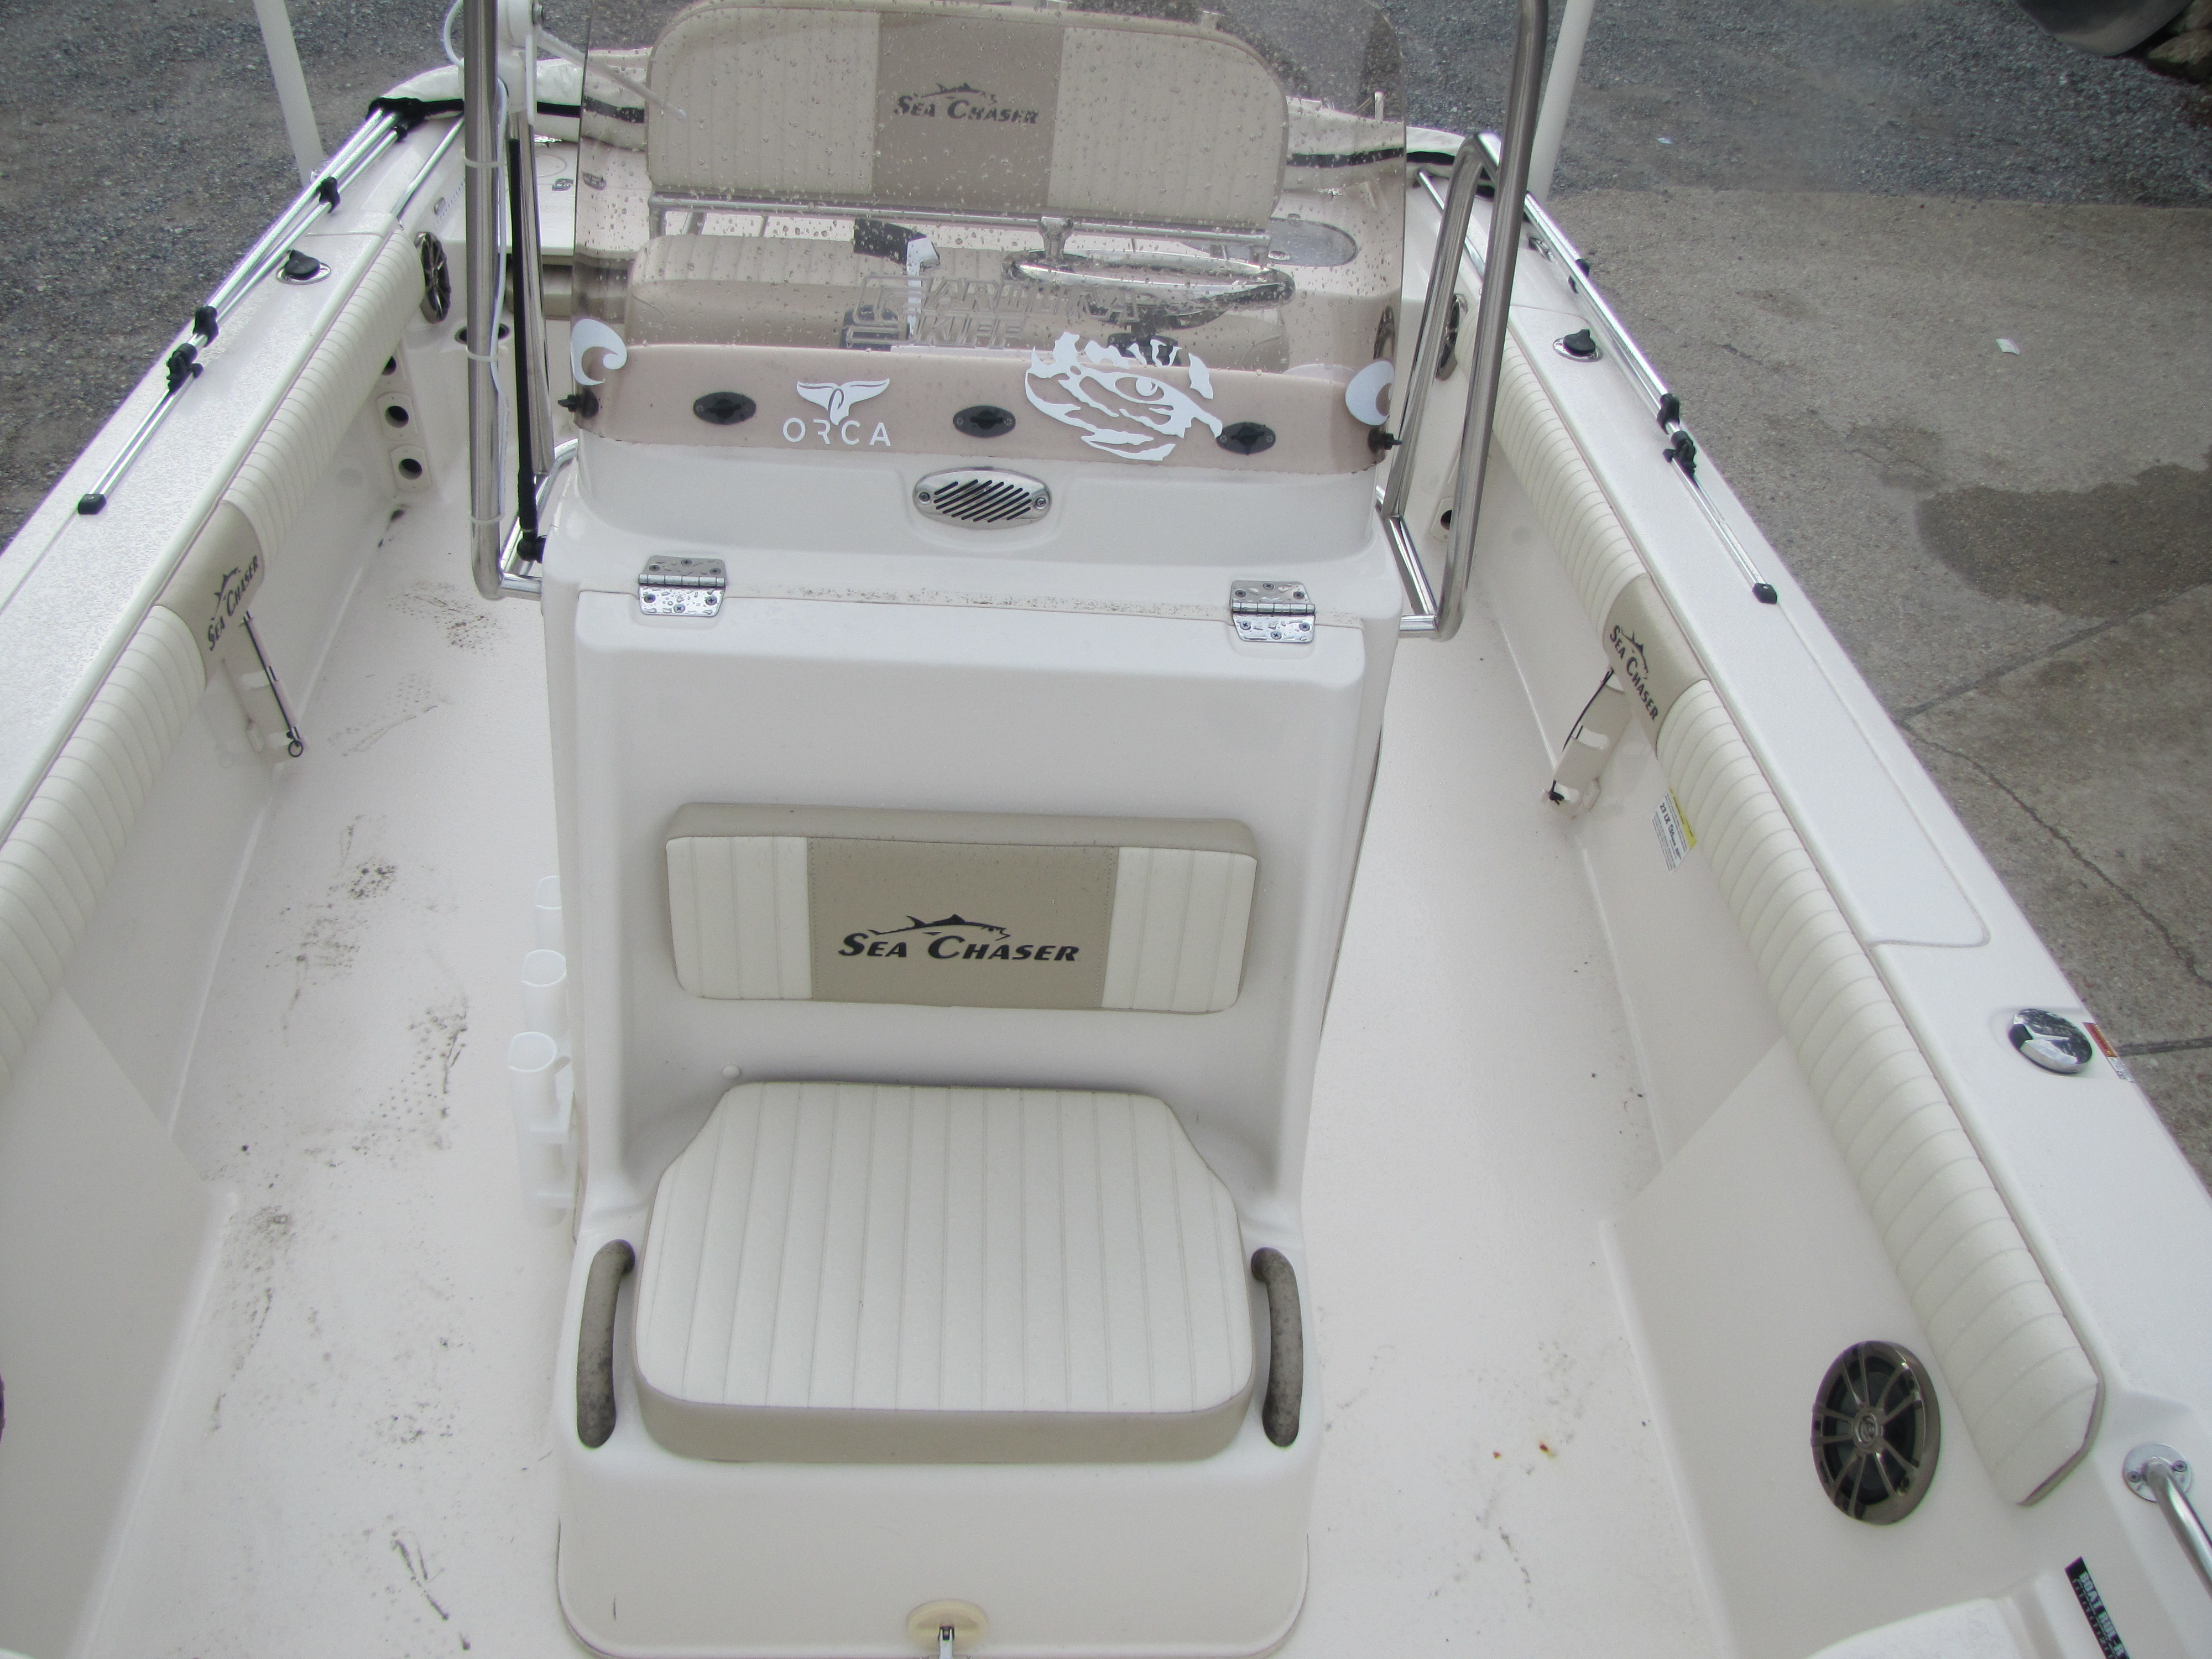 2018 Sea Chaser boat for sale, model of the boat is 23 LX & Image # 8 of 19